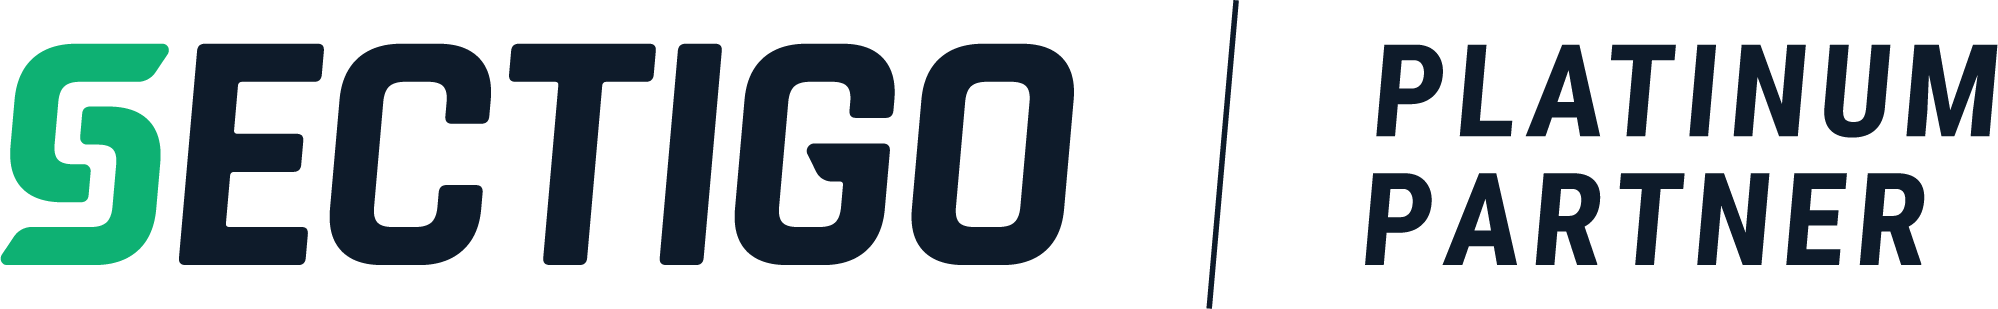 Sectigo Platinum Partner